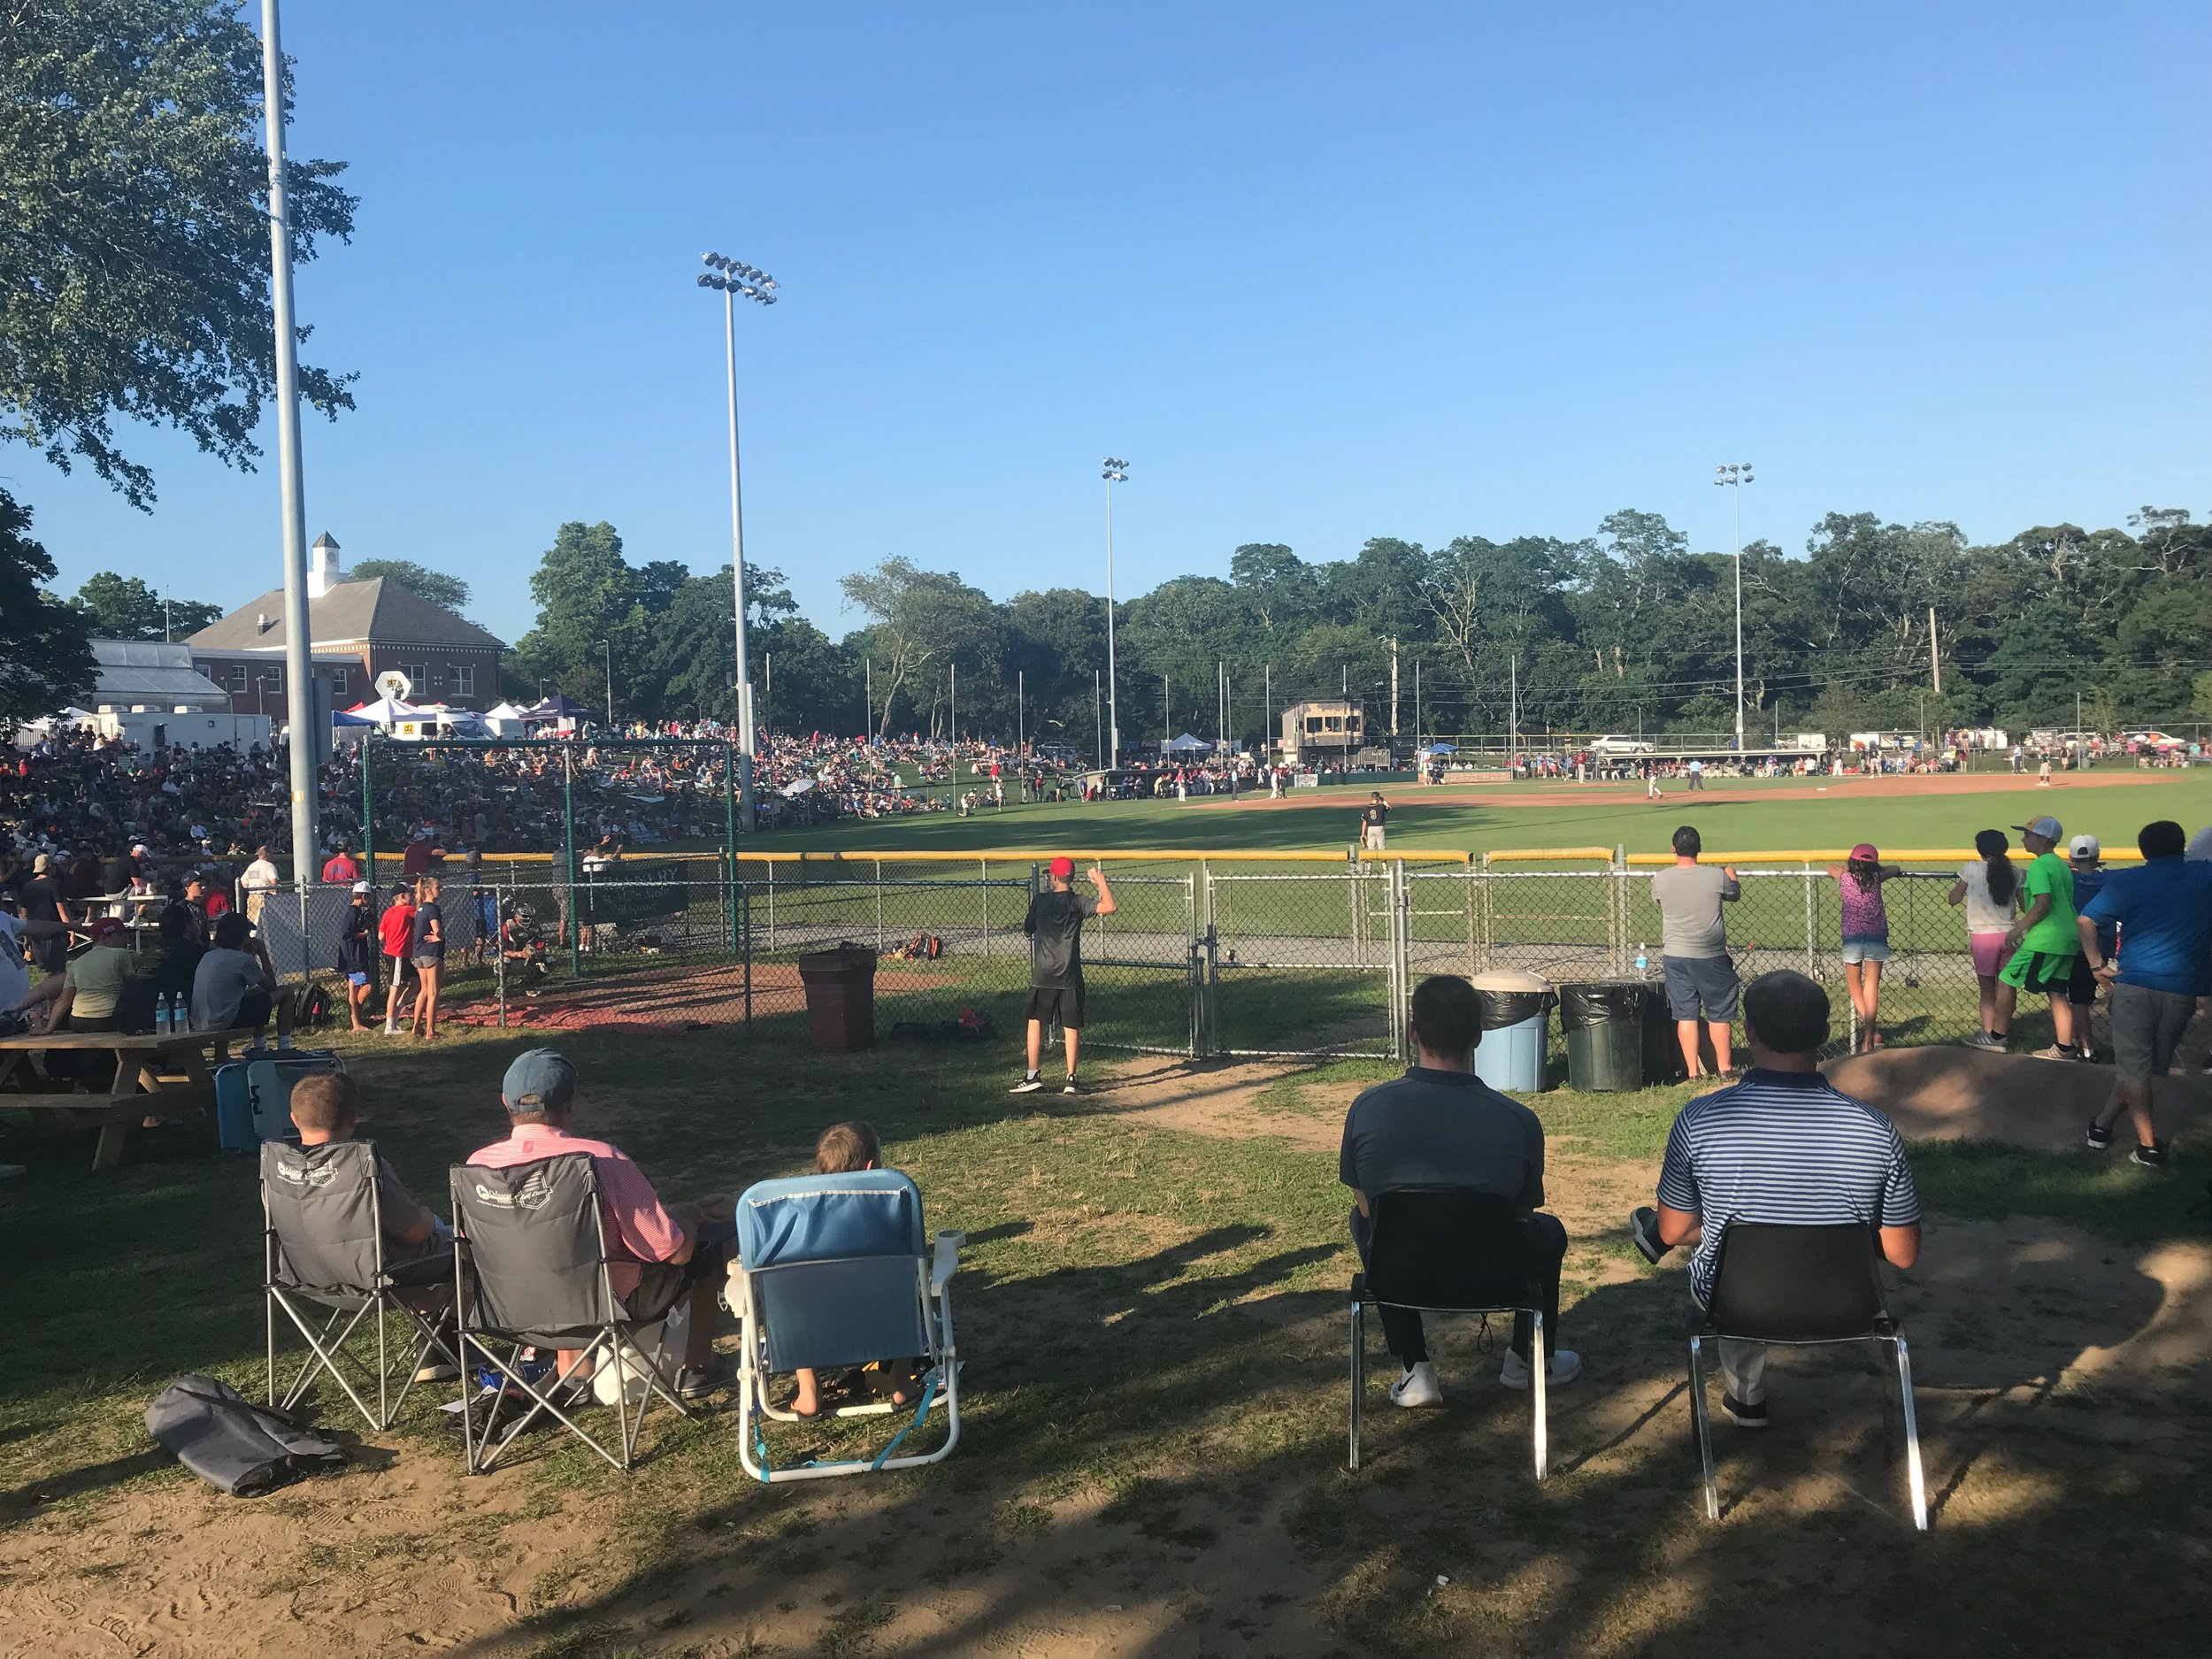 Fans gather on the hill behind the first base side to watch the 2019 Cape League All Star Game.  Photo by Harrison Meyers